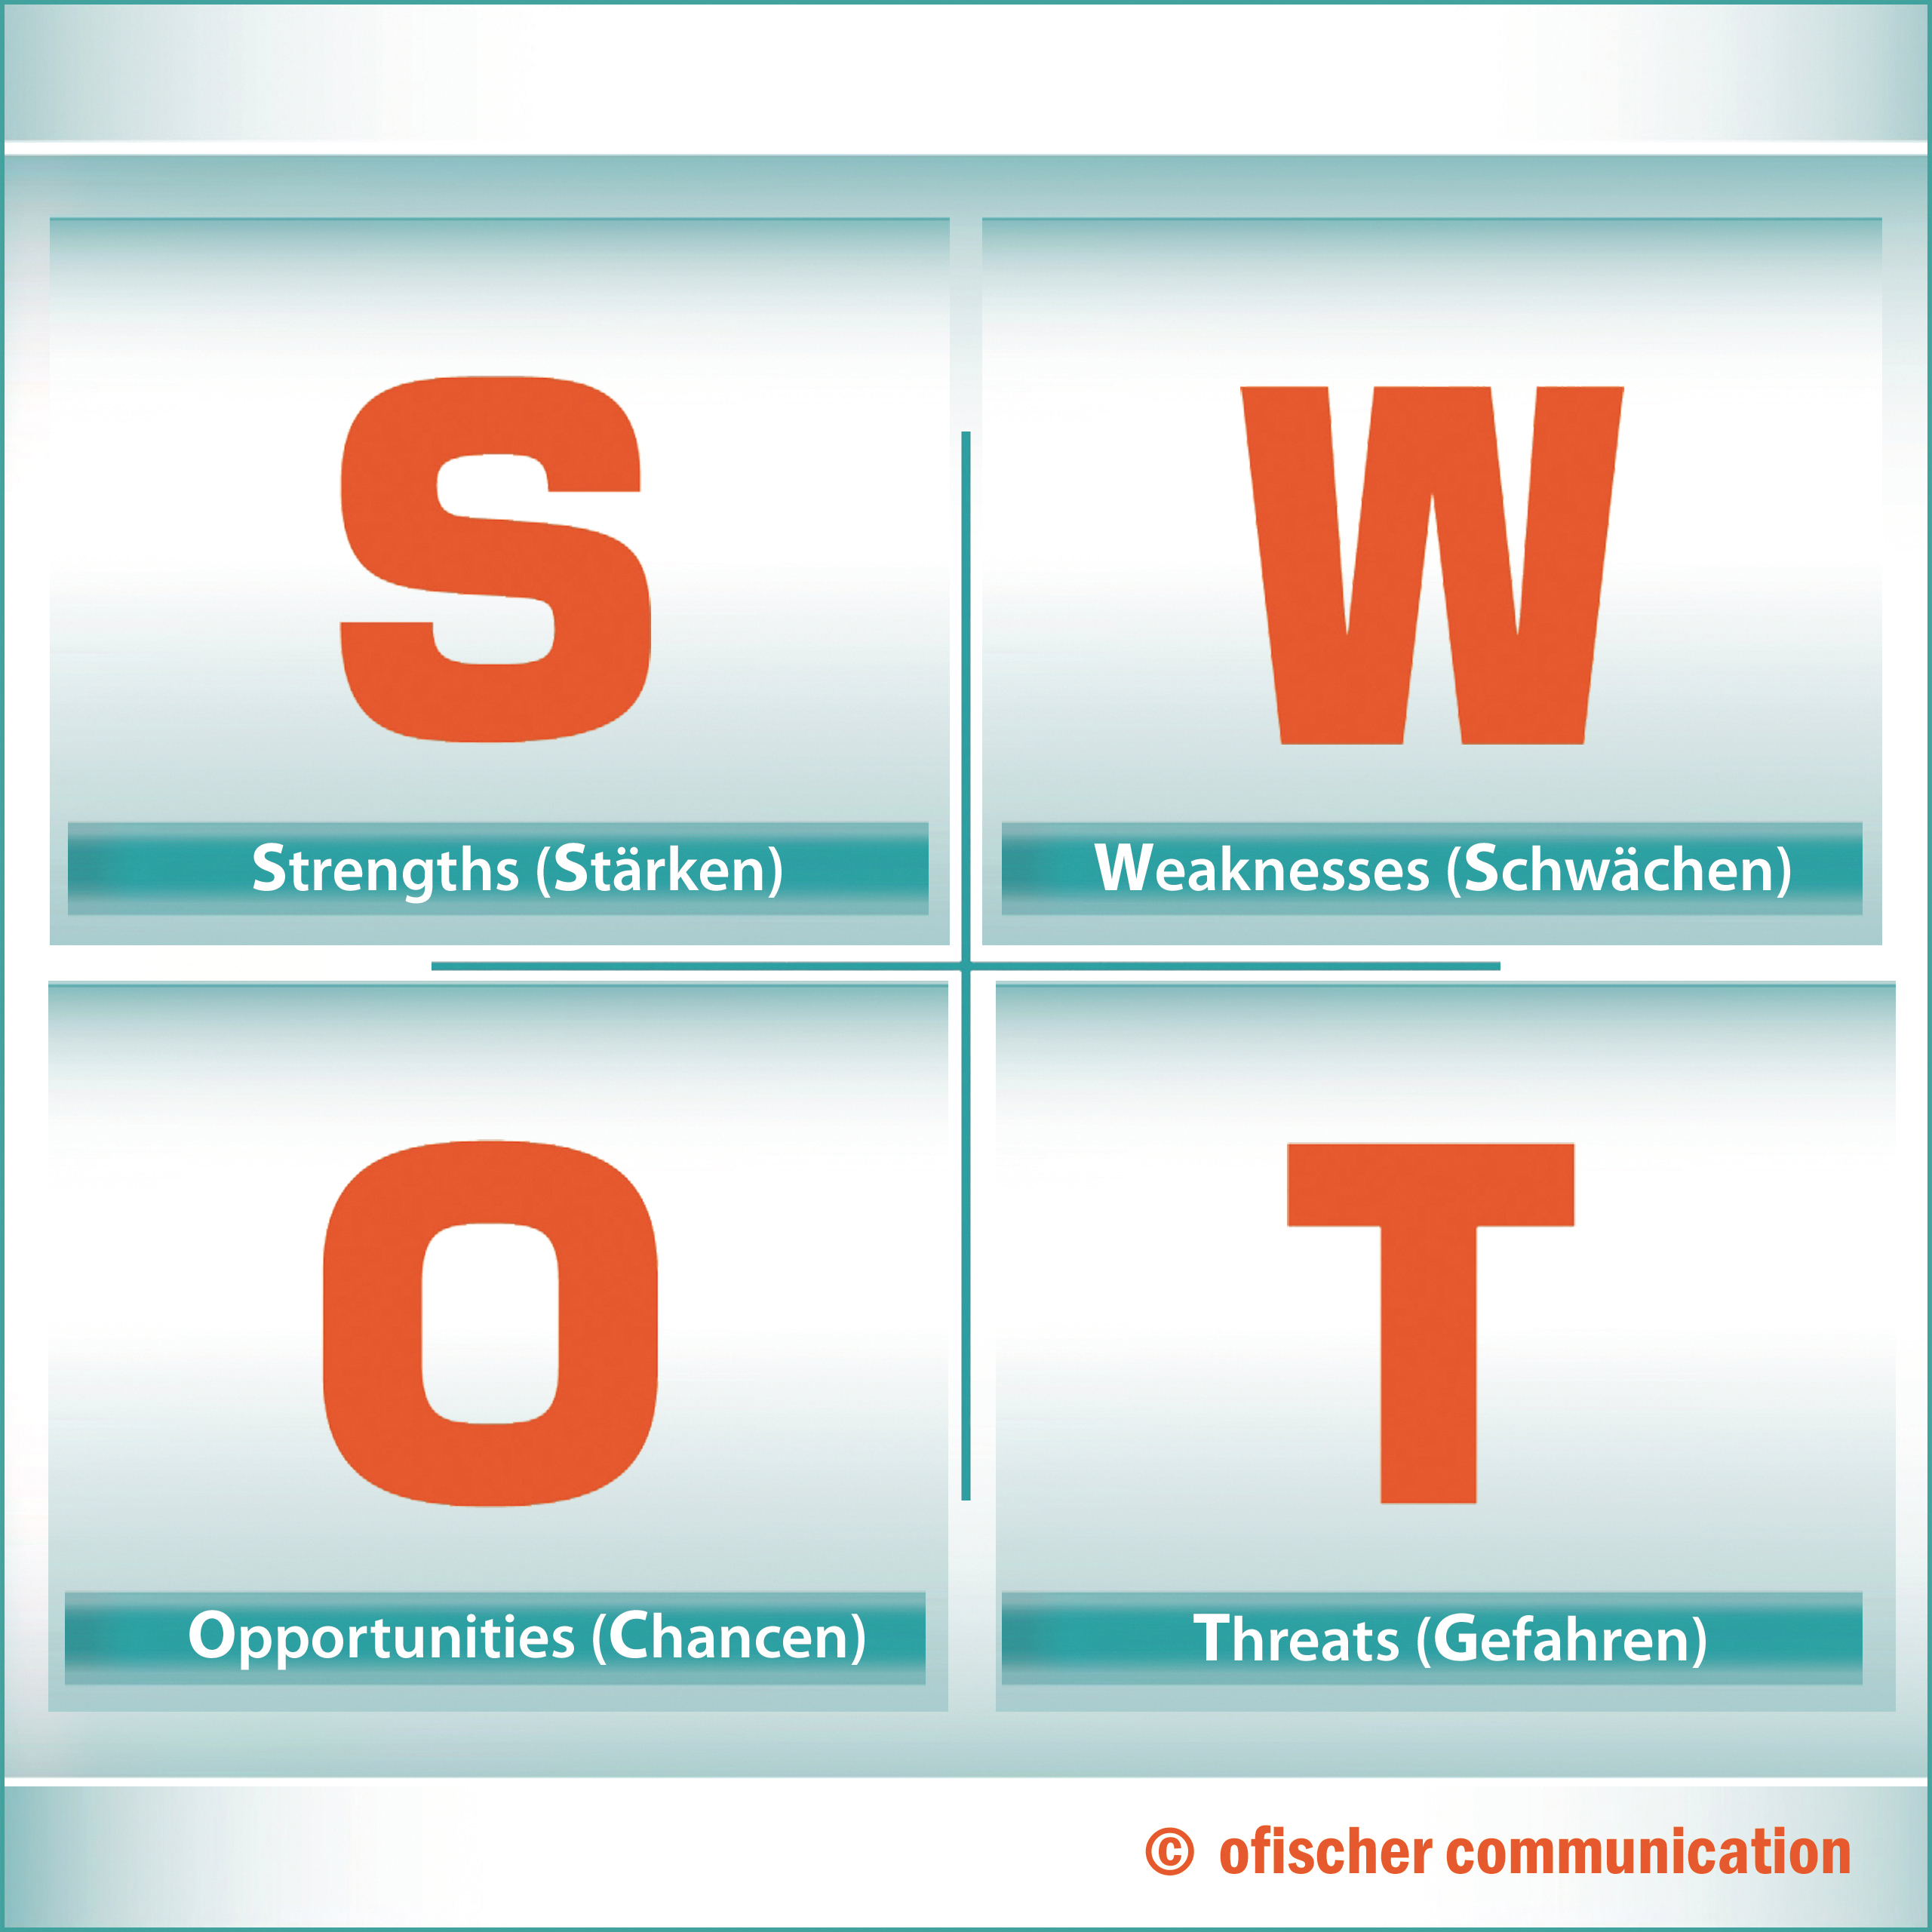 SWOT-Analyse in der b2b-Marketingstrategie: Strengths (Stärken), Weaknesses (Schwächen), Opportunities (Chancen), Threats (Gefahren).